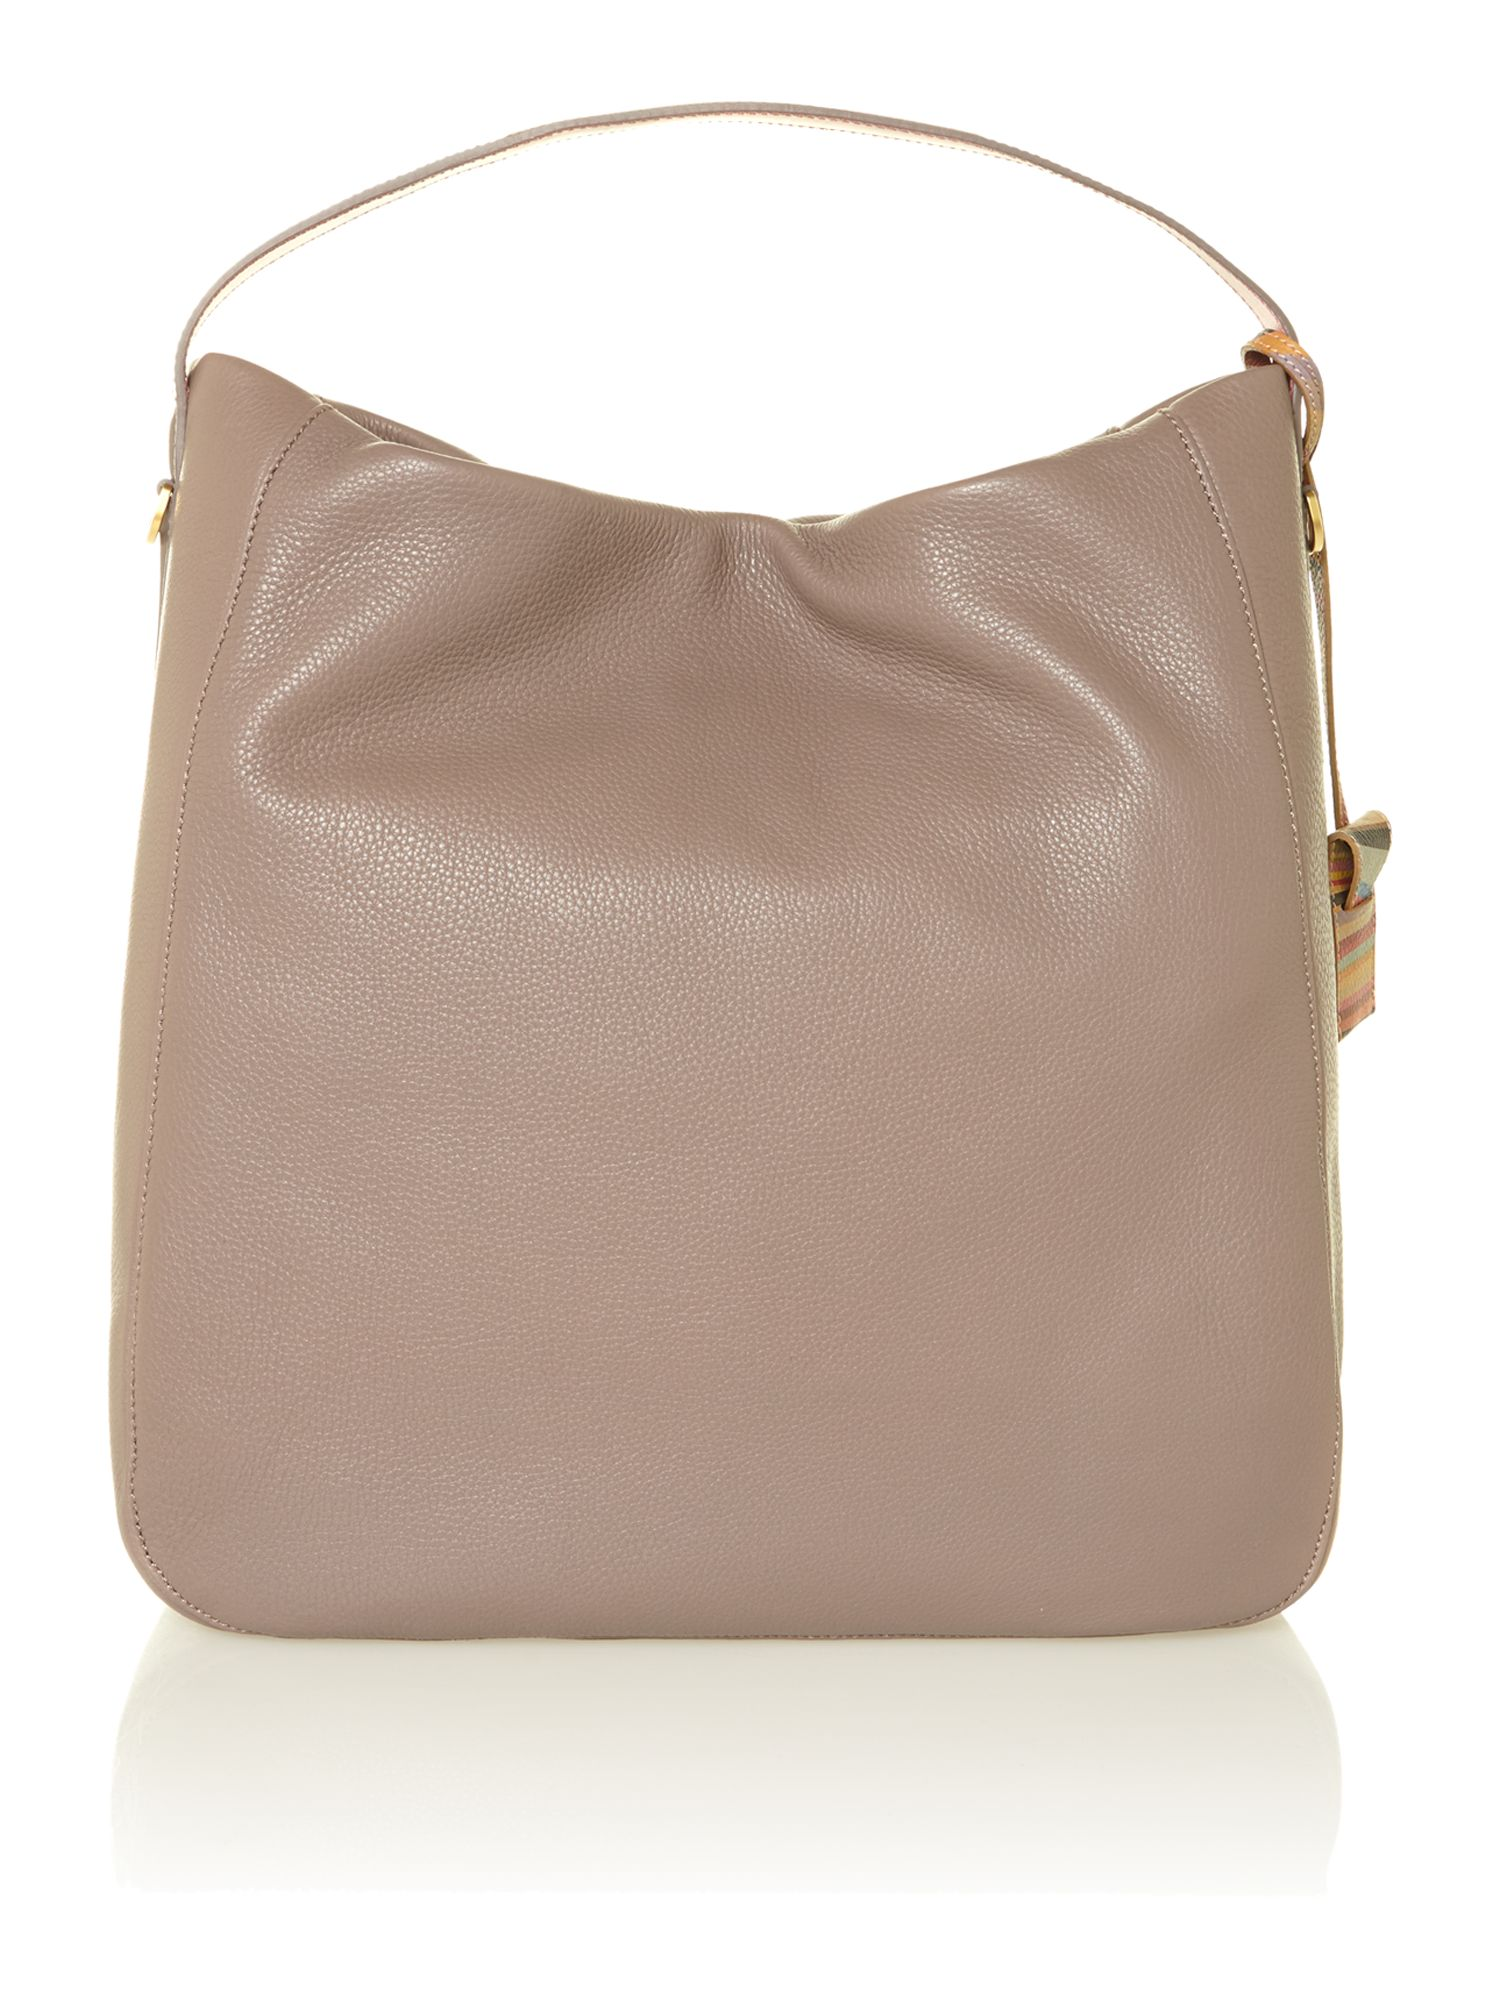 Albermale taupe large hobo bag